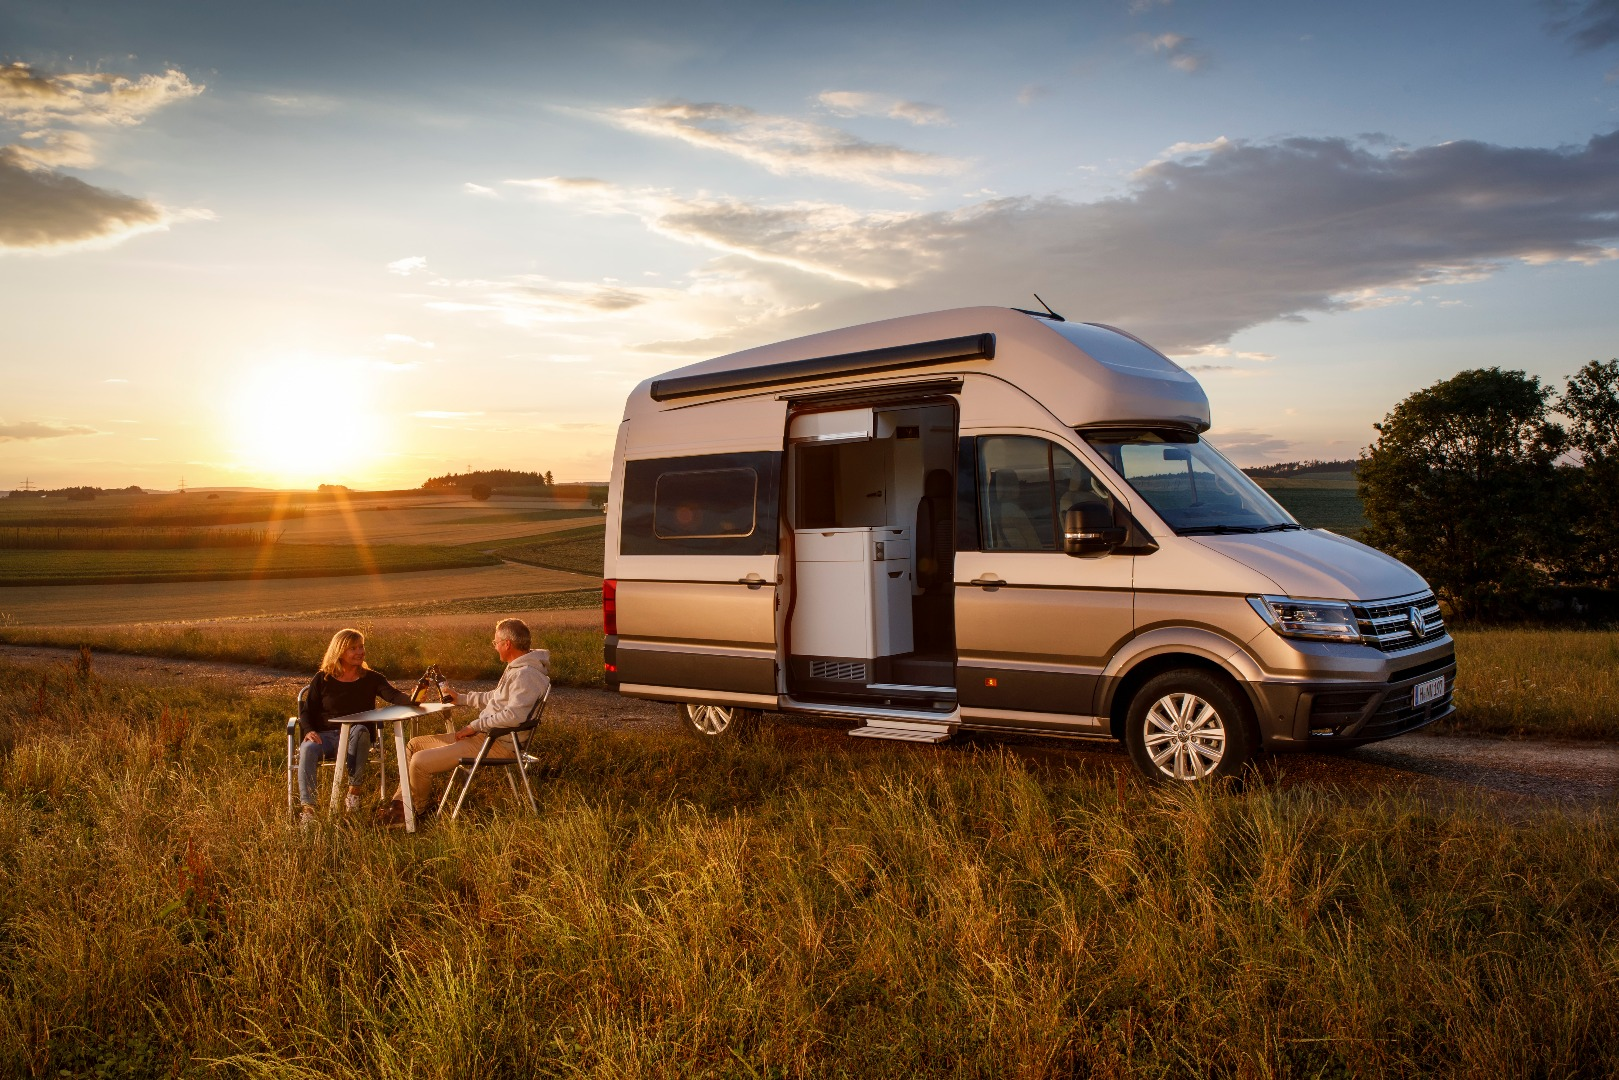 Volkswagen makes the world's favorite camper van bigger and better